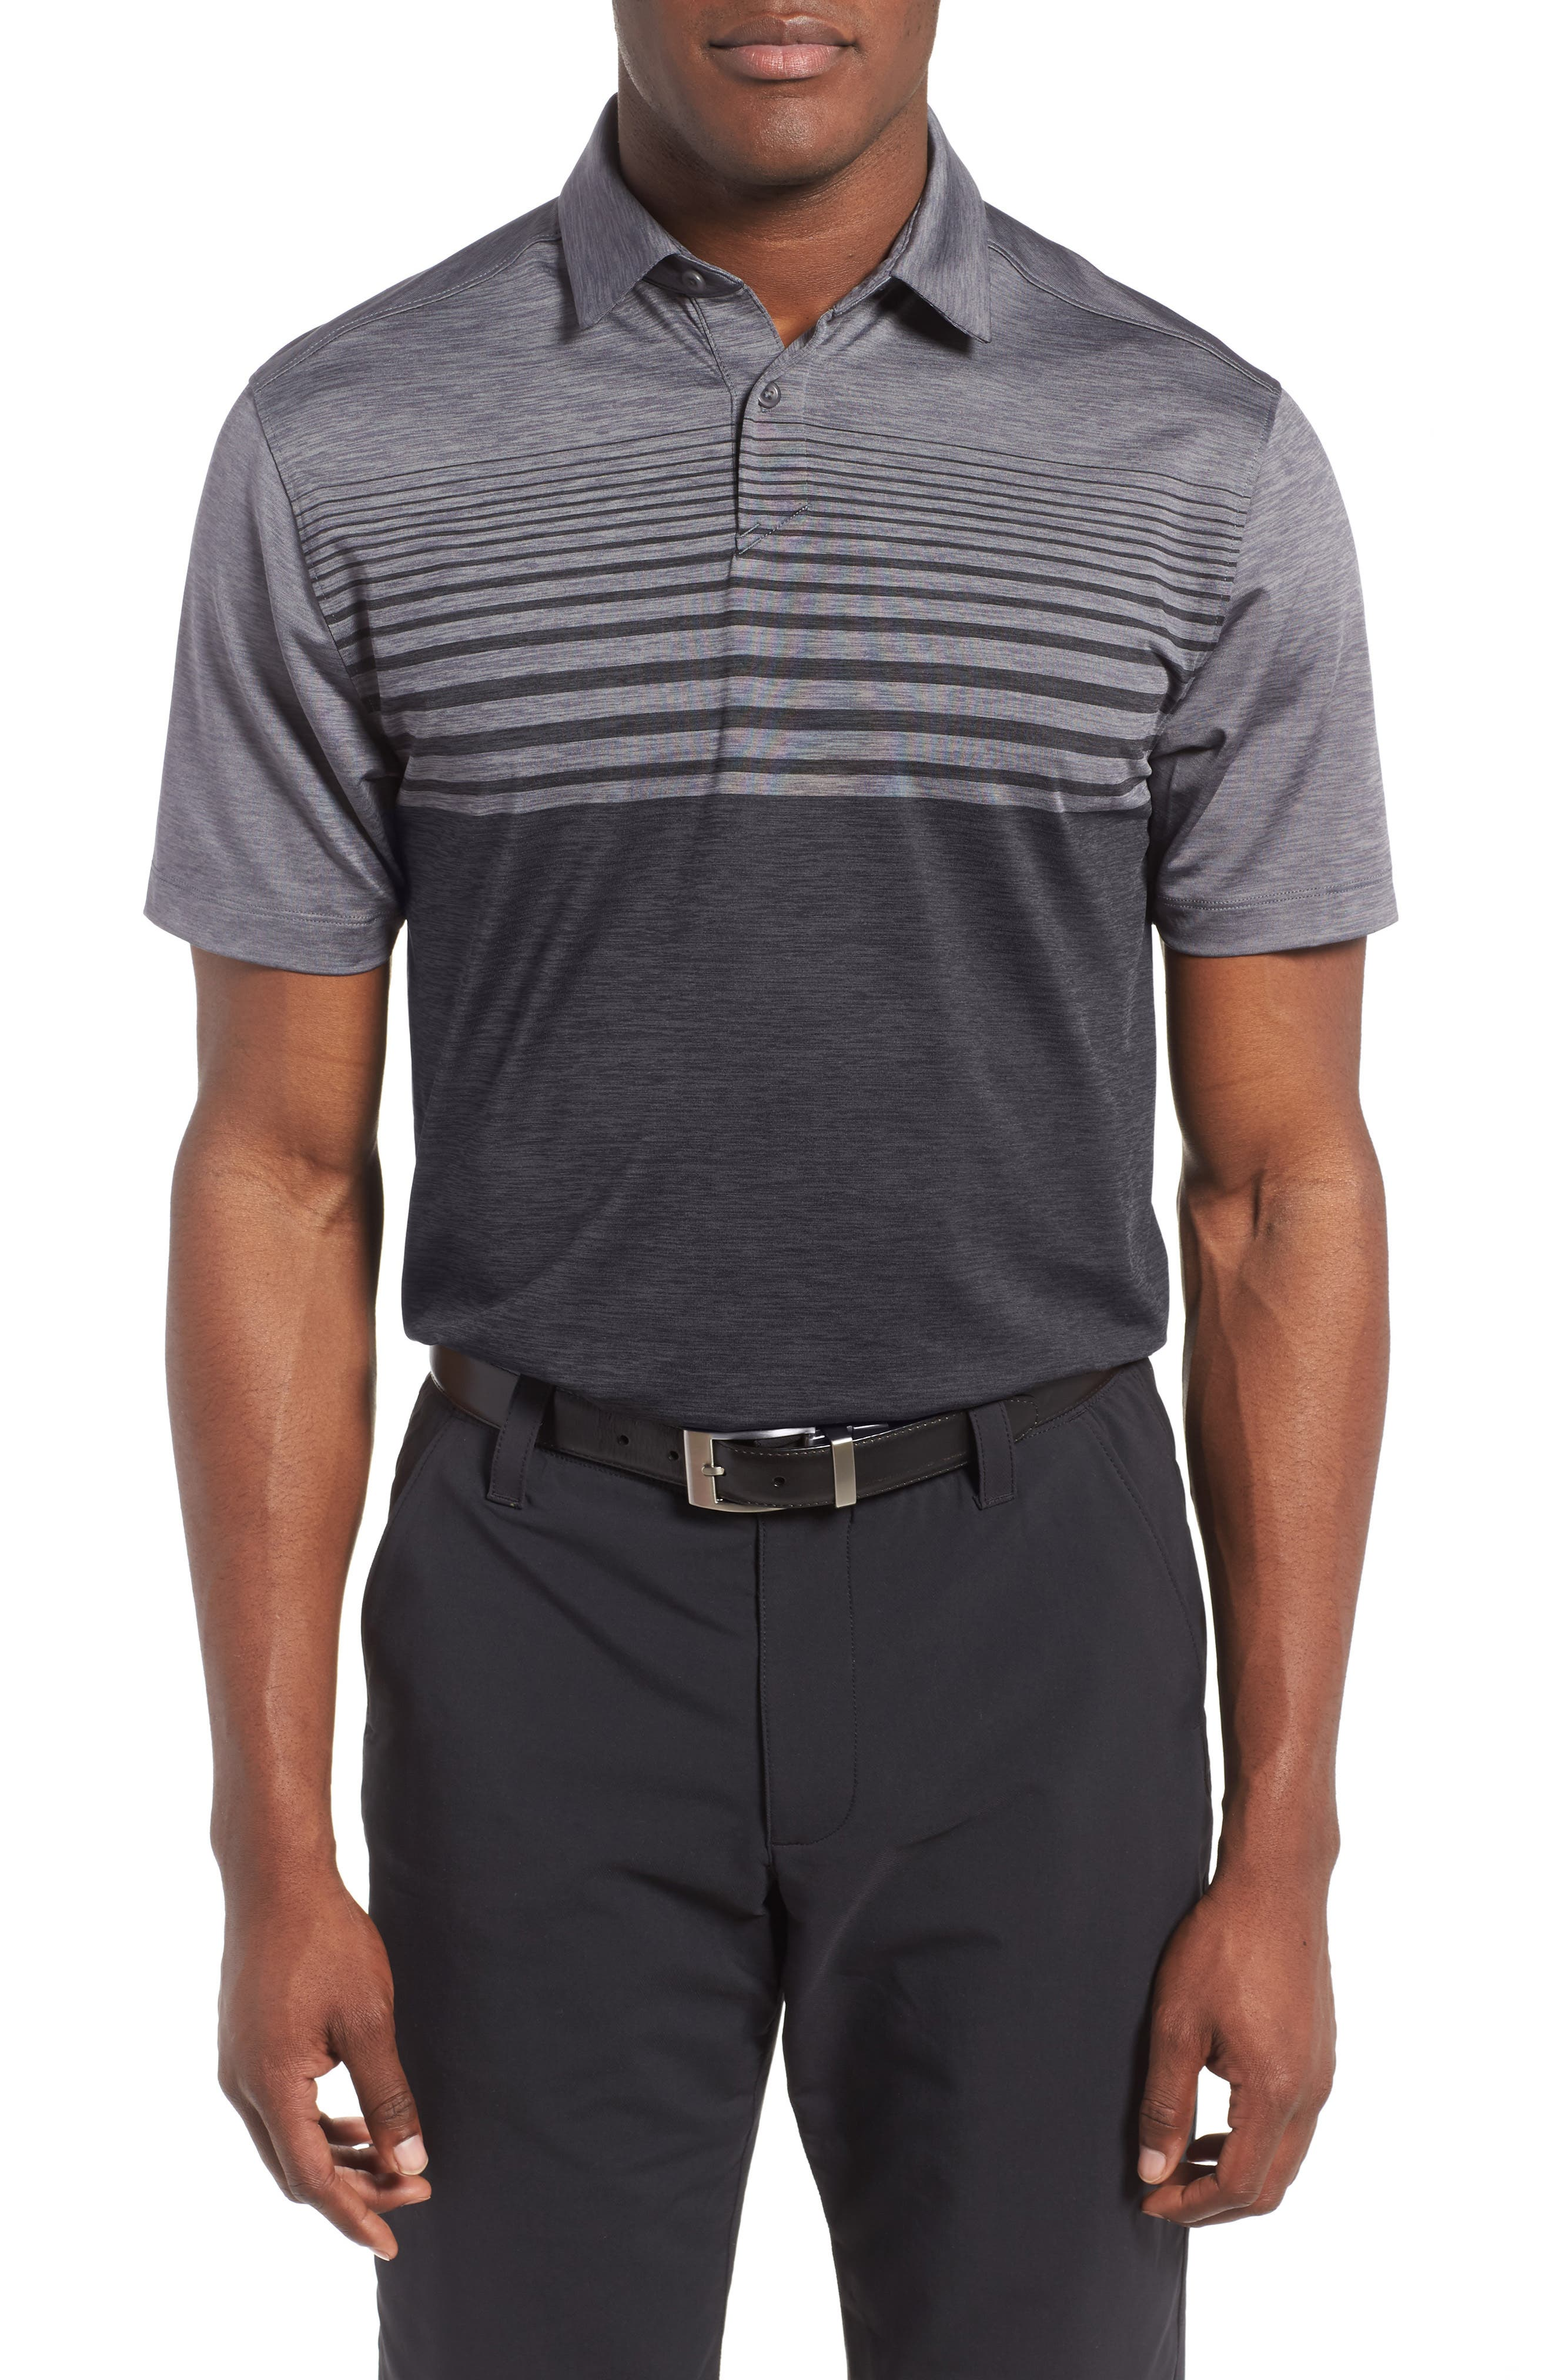 Alternate Image 1 Selected - Under Armour CoolSwitch Regular Fit Polo